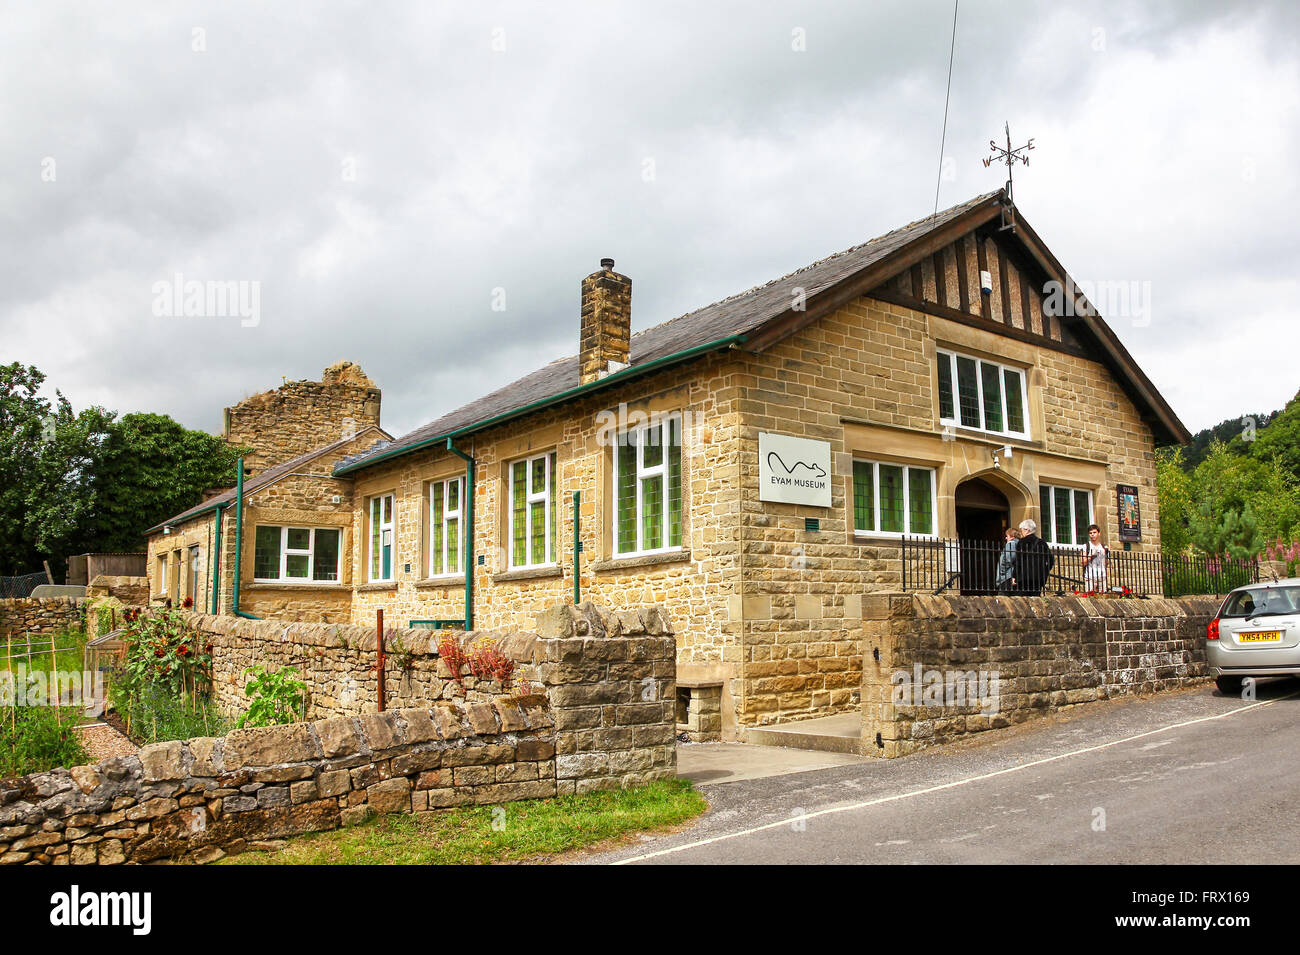 Eyam Museum in the plague village of Eyam Derbyshire England UK - Stock Image